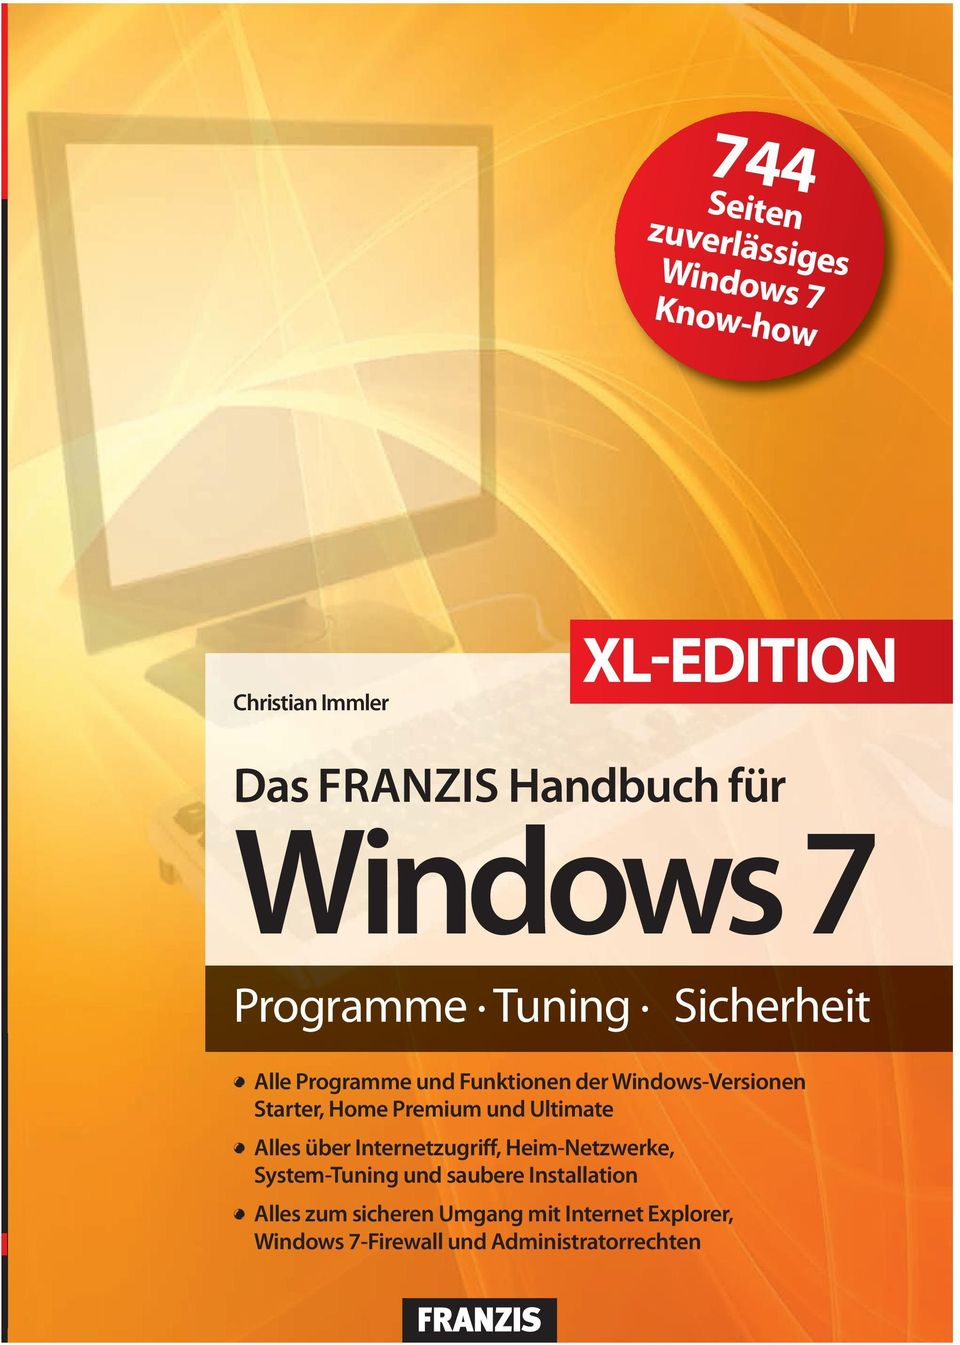 Alle Programme und Funktionen der Windows-Versionen Starter, Home Premium und Ultimate!